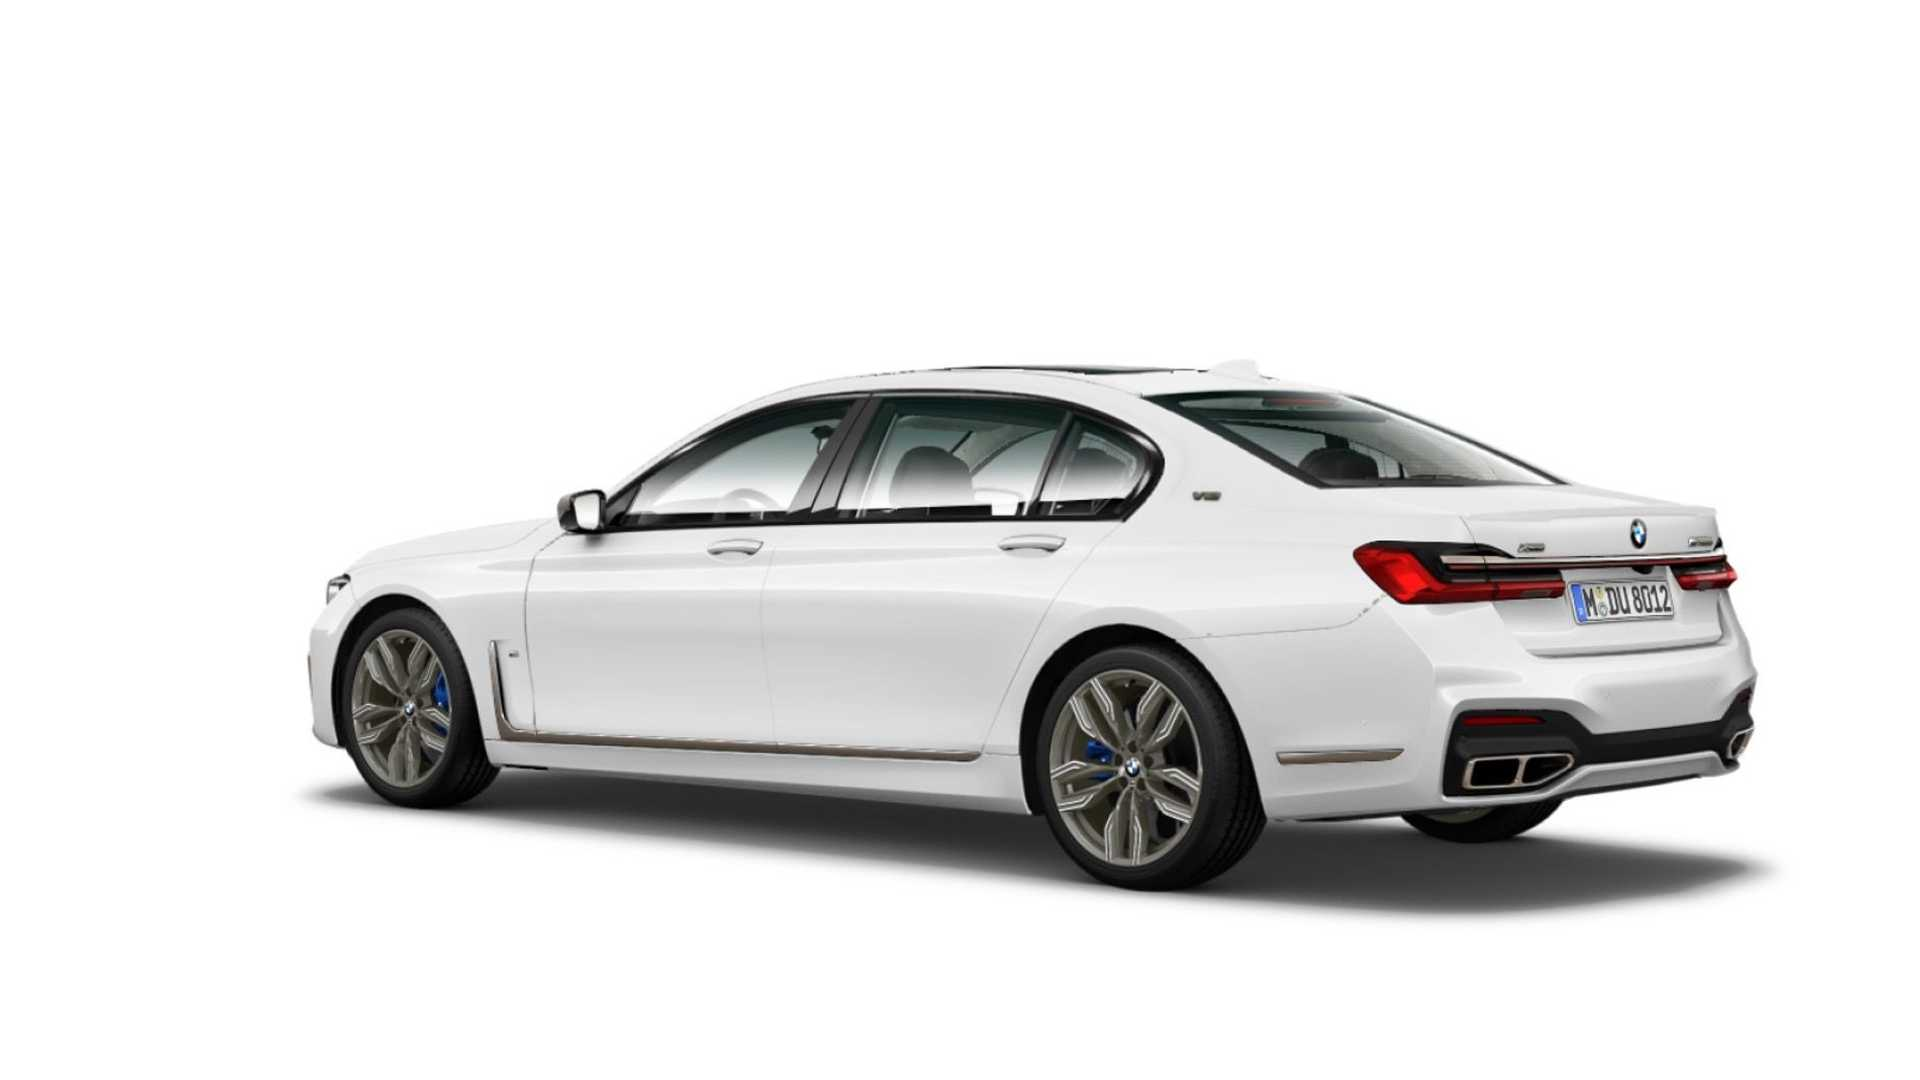 11 New 2020 BMW 7 Series Lci Performance with 2020 BMW 7 Series Lci